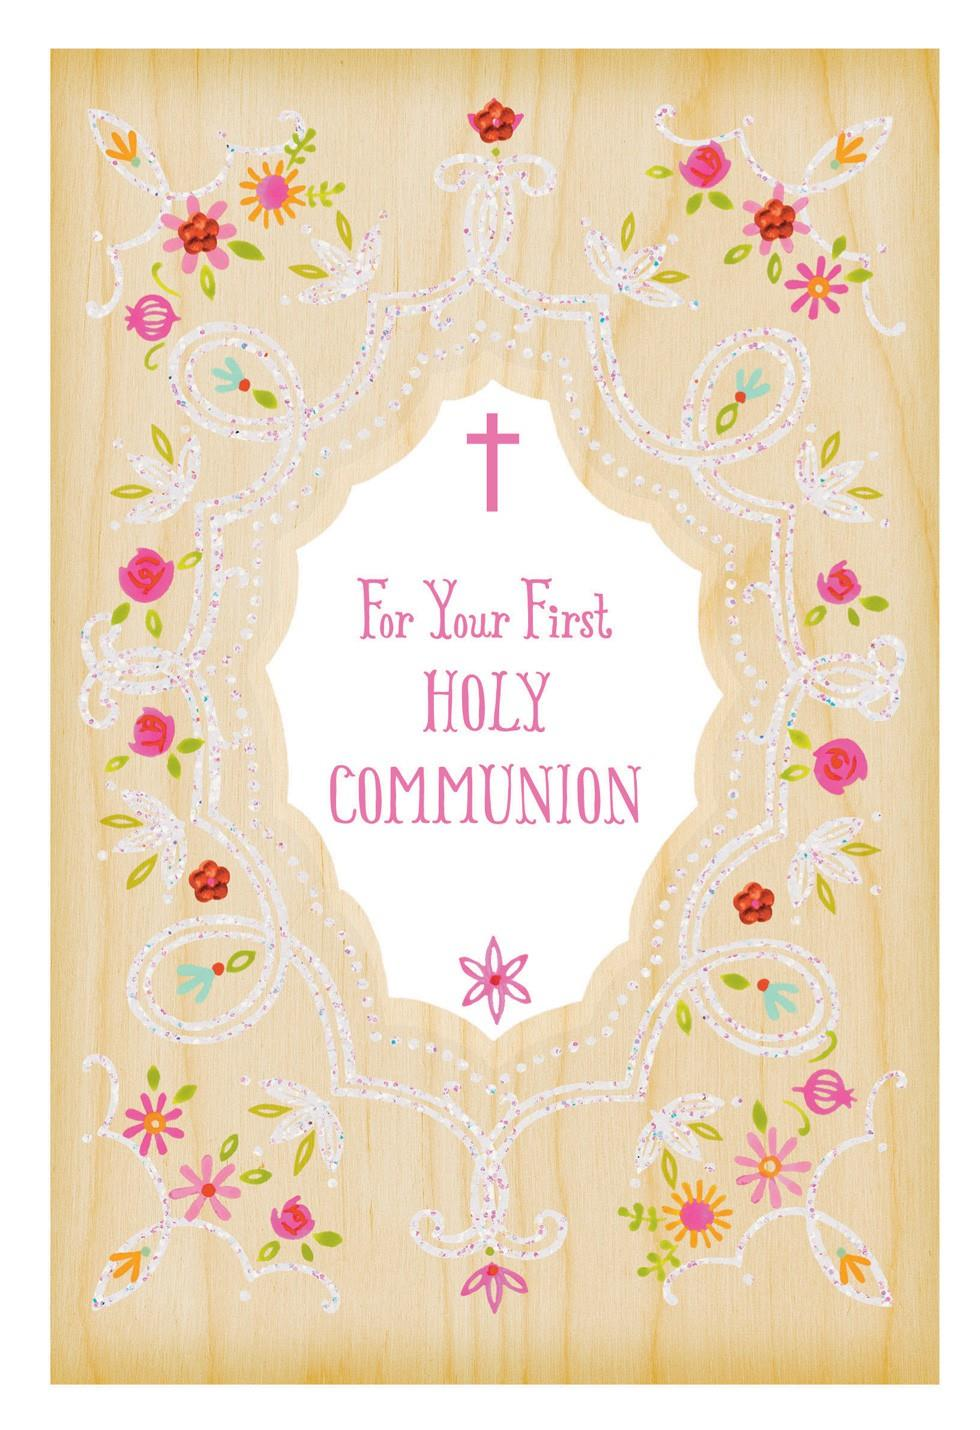 every grace and blessing first holy communion card for her